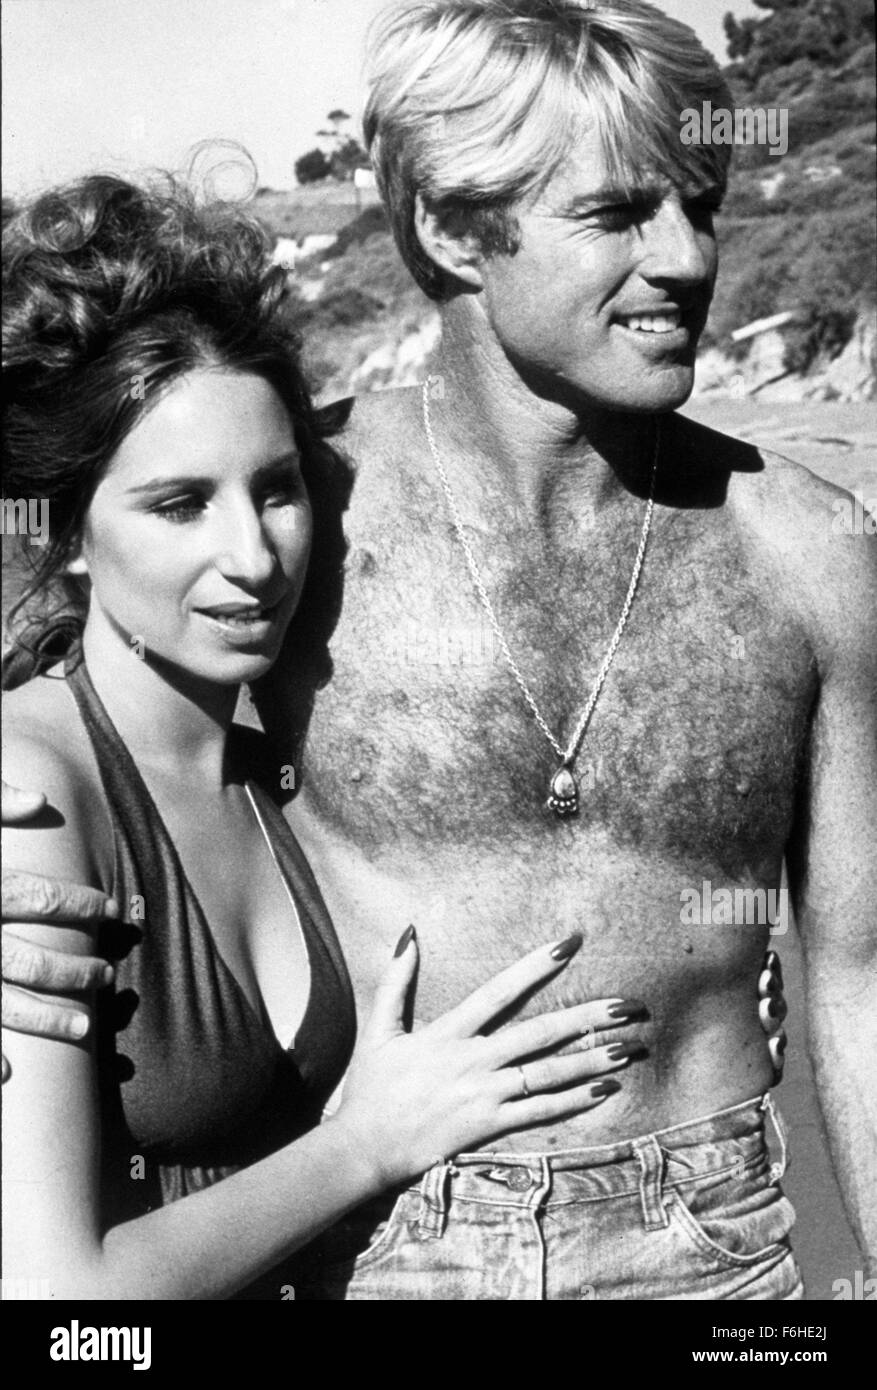 1973, Film Title: WAY WE WERE, Director: SYDNEY POLLACK, Studio: COLUMBIA,  Pictured: BARE CHEST, BEACH, BEEFCAKE, BODY PART, SYDNEY POLLACK, ROBERT  REDFORD.